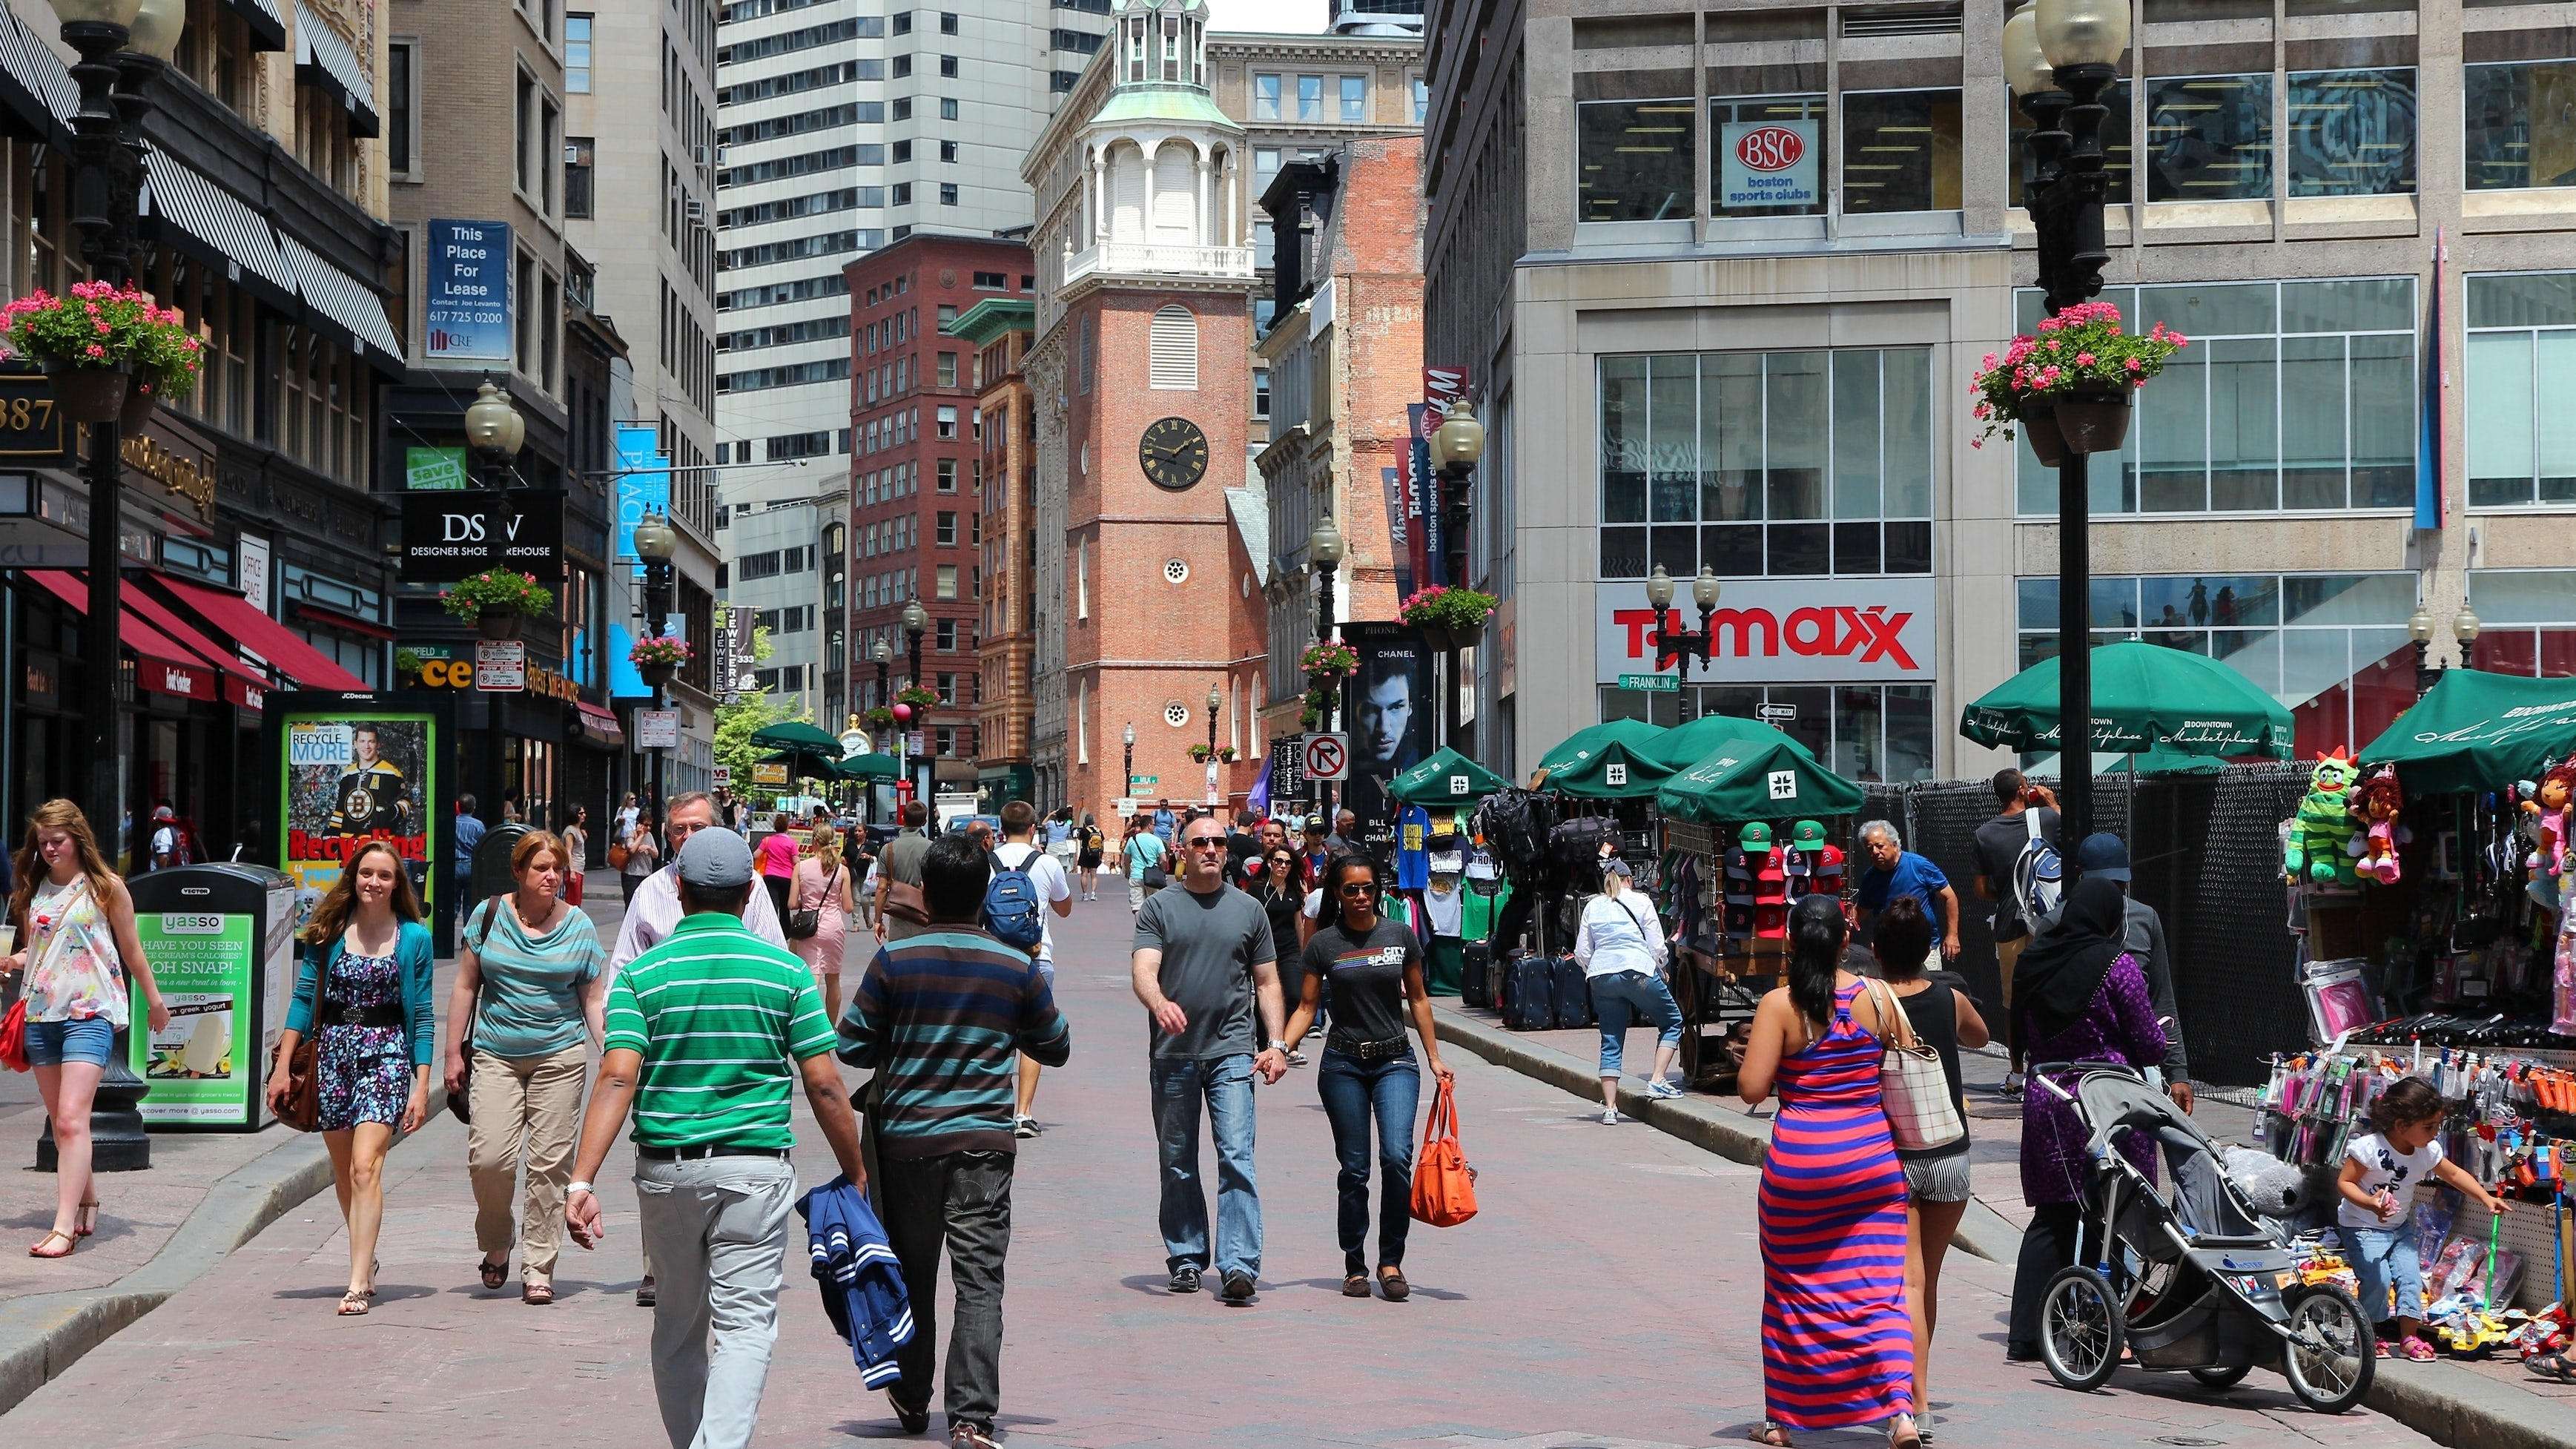 Pedestrian shopping street in Boston, United States | Source: Shutterstock